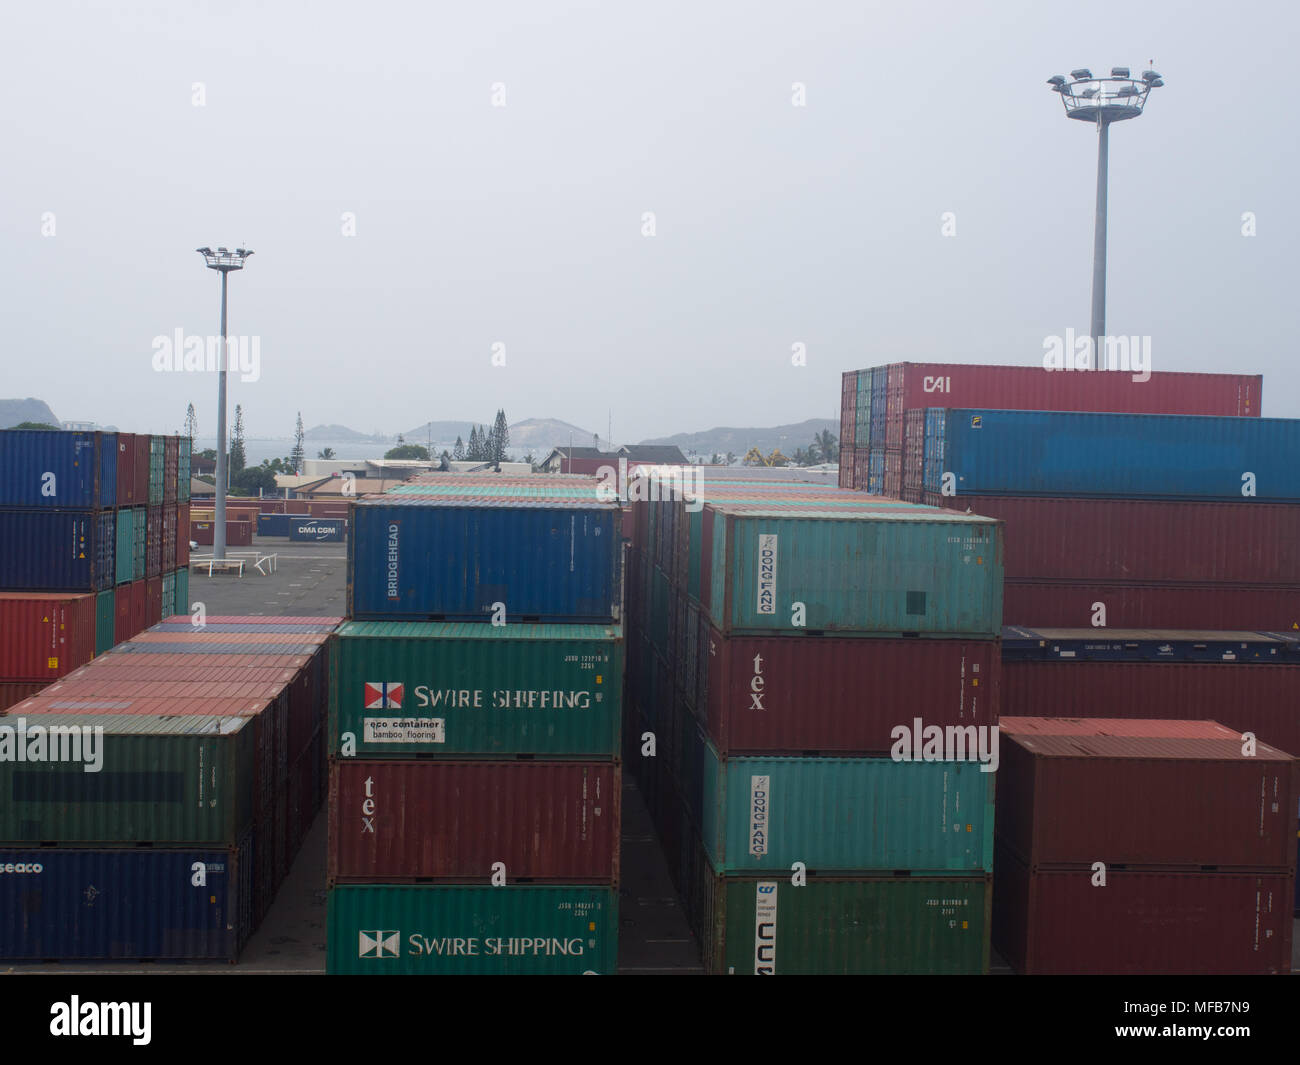 Shipping Containers At The Port of Noumea - Stock Image